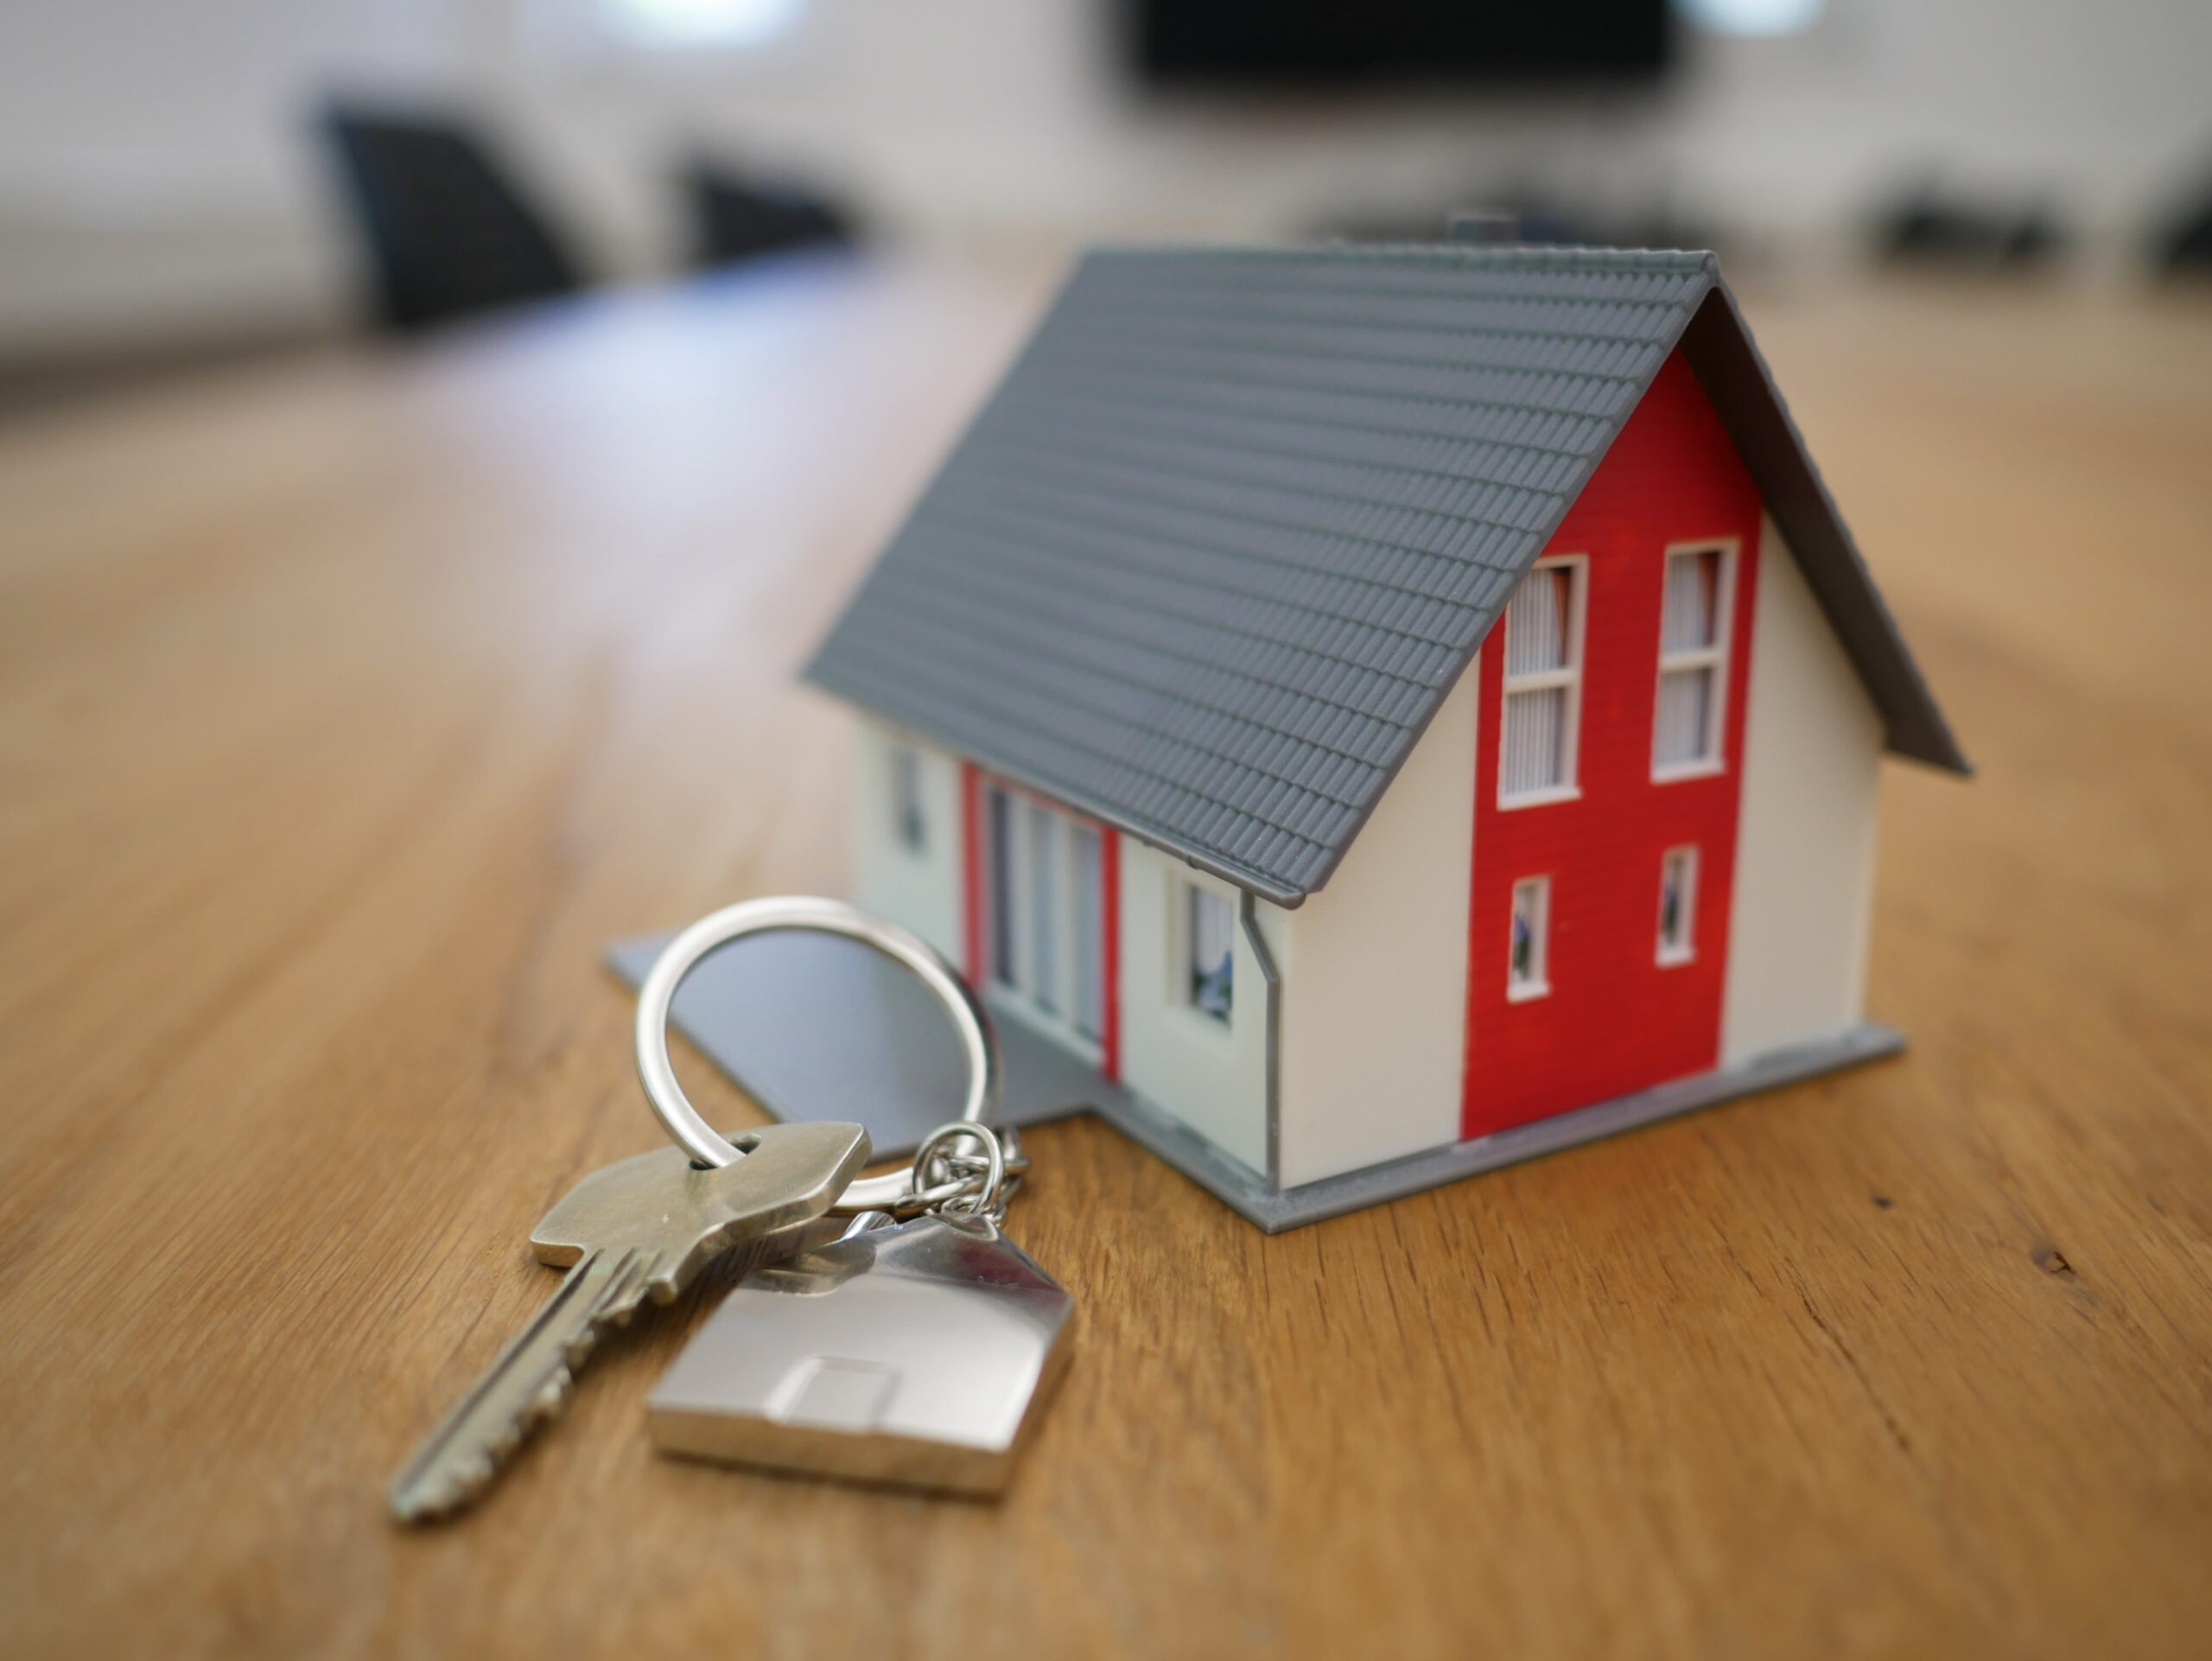 House key with home on chain